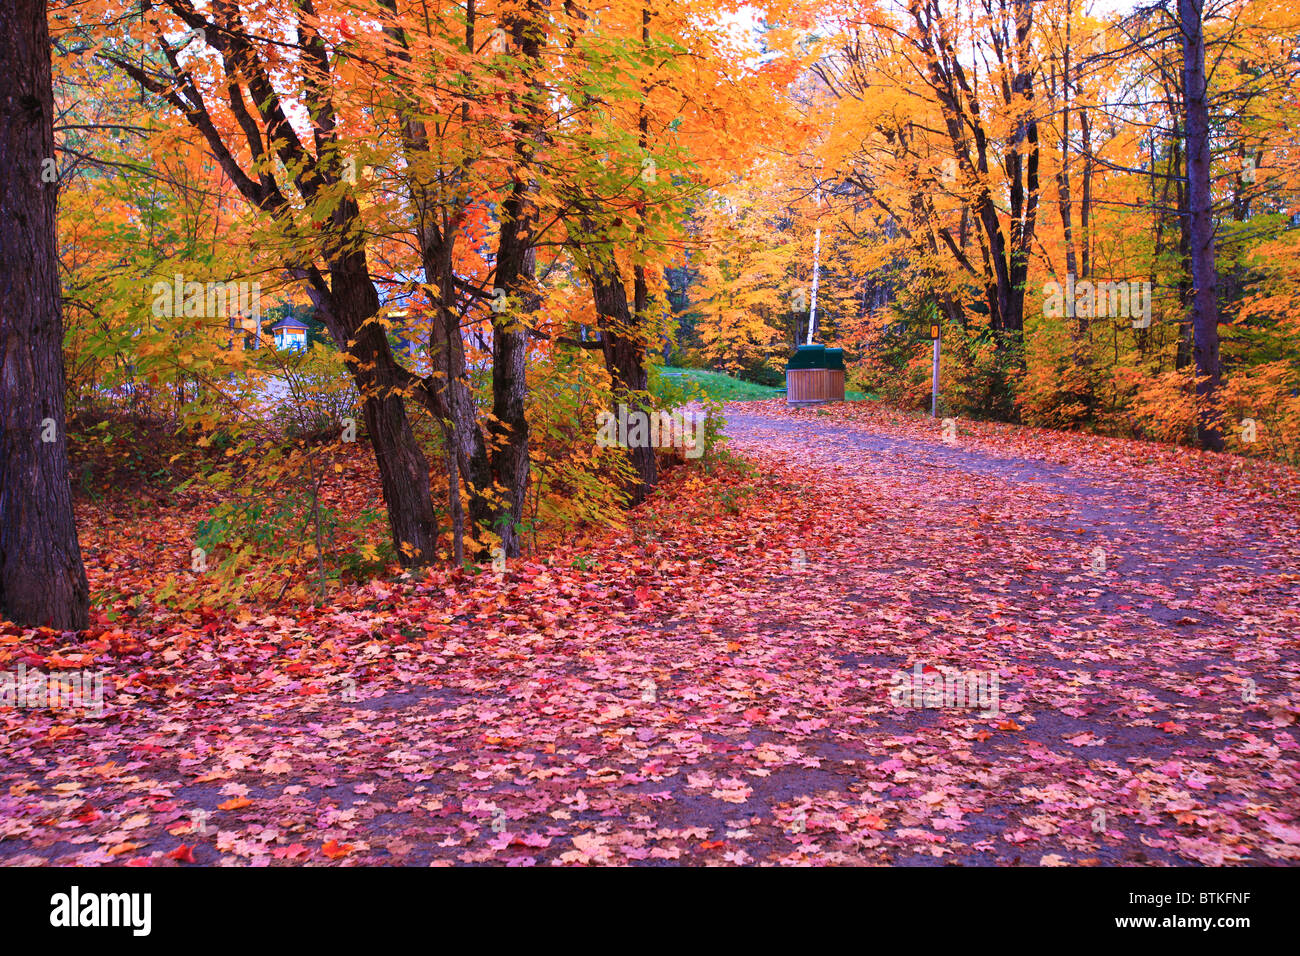 Fall foliage in a late afternoon in Algonquin provincial park, Canada - Stock Image